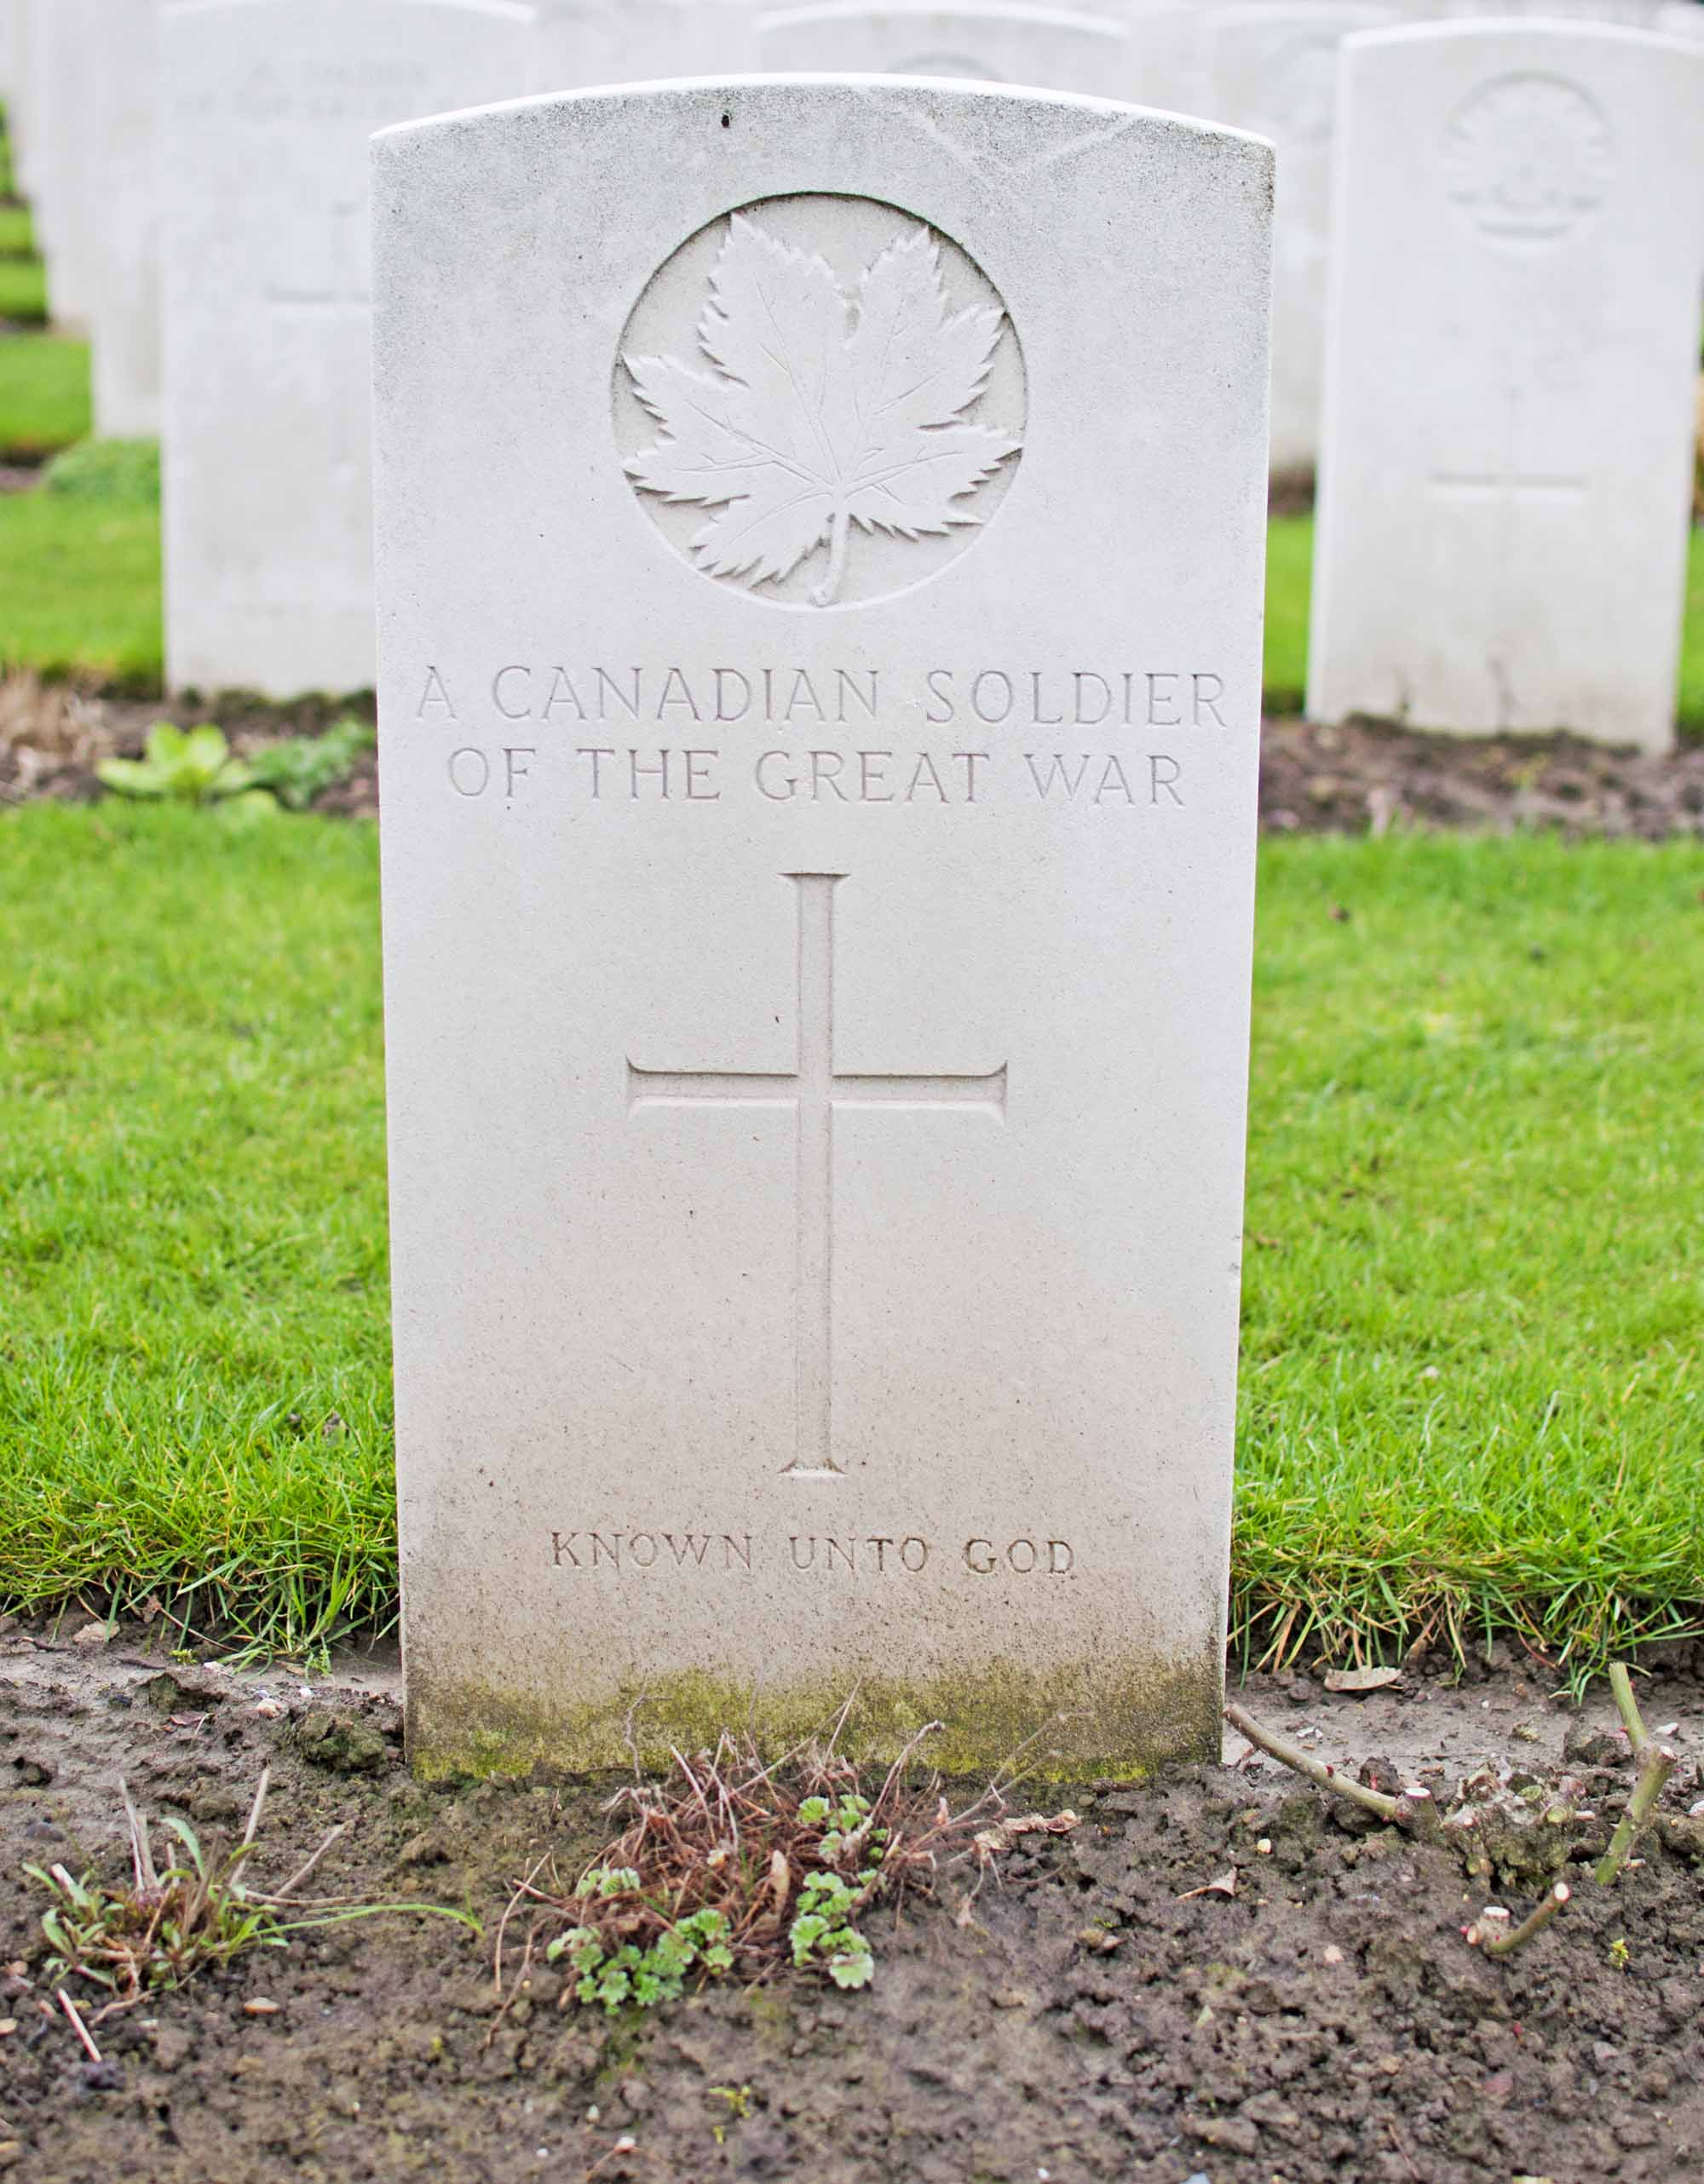 Grave of an Unknown Canadian Soldier